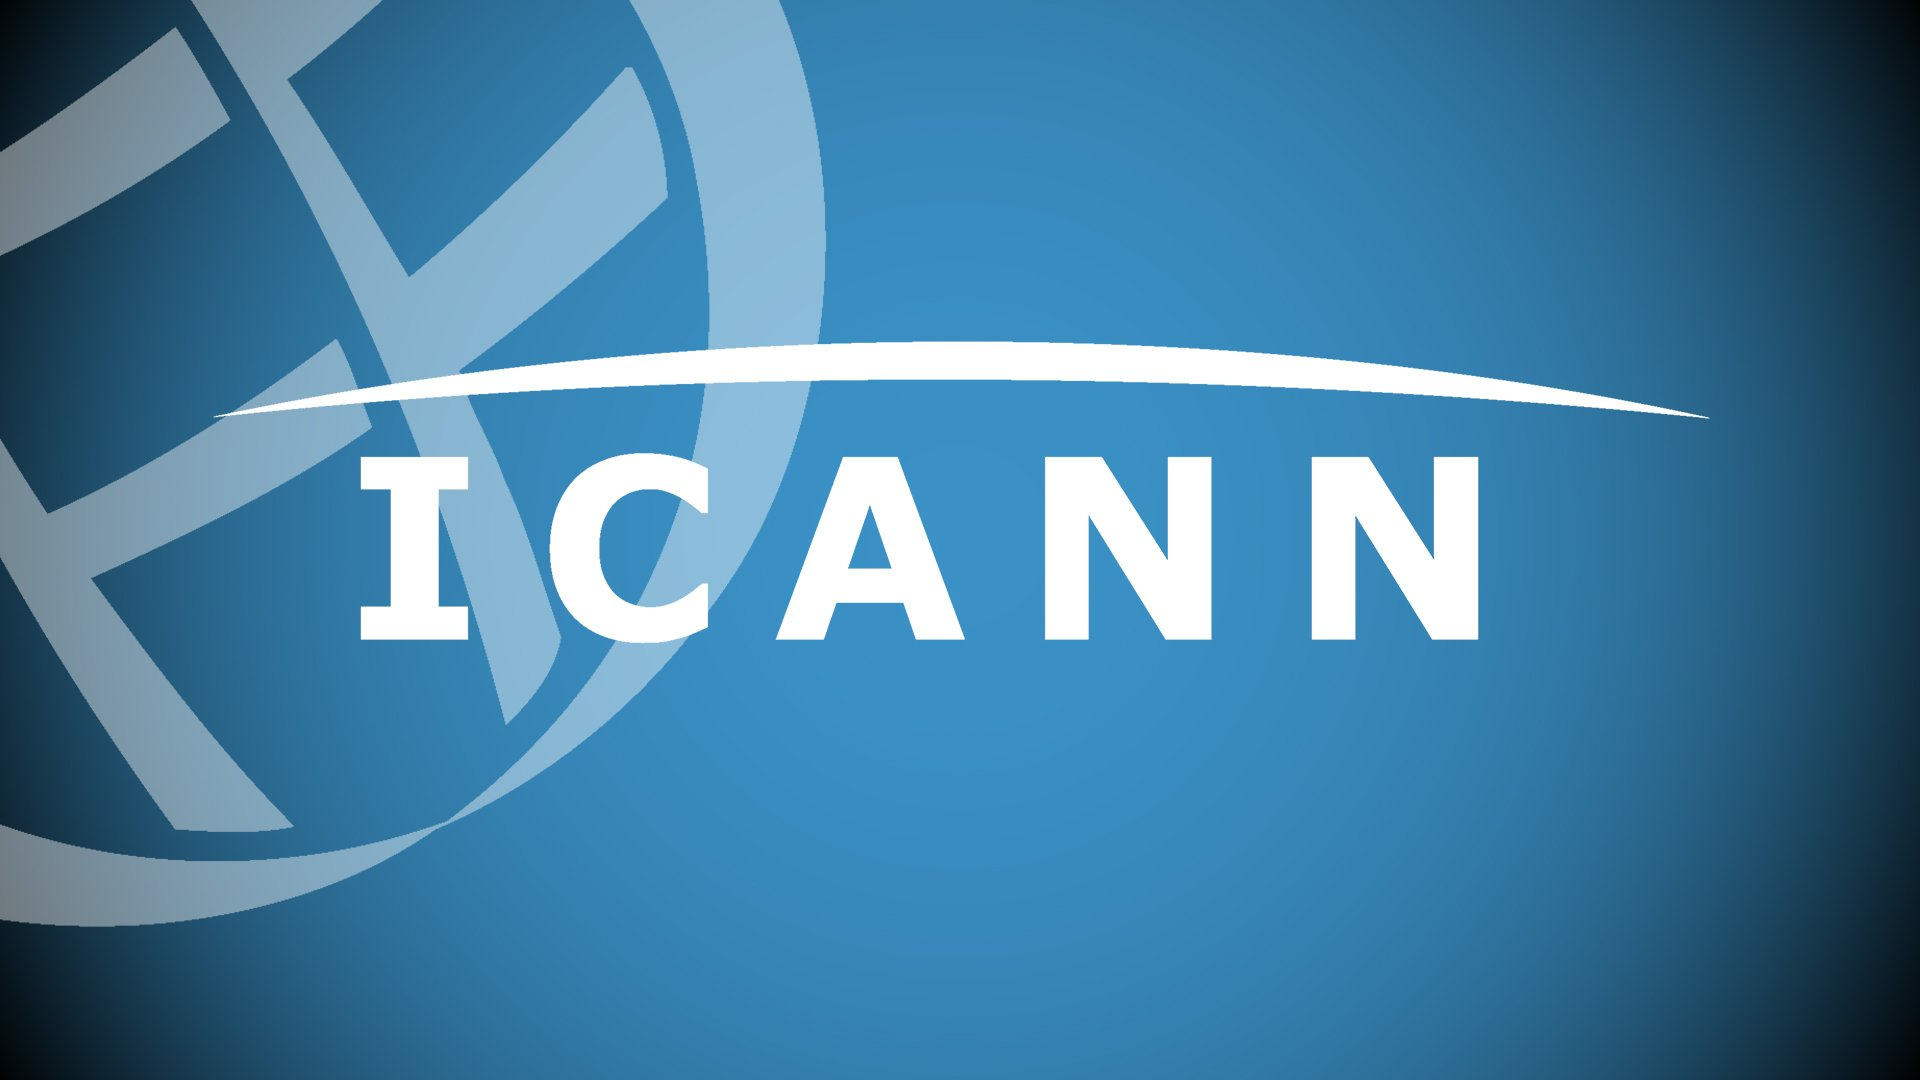 icann-understand-their-role